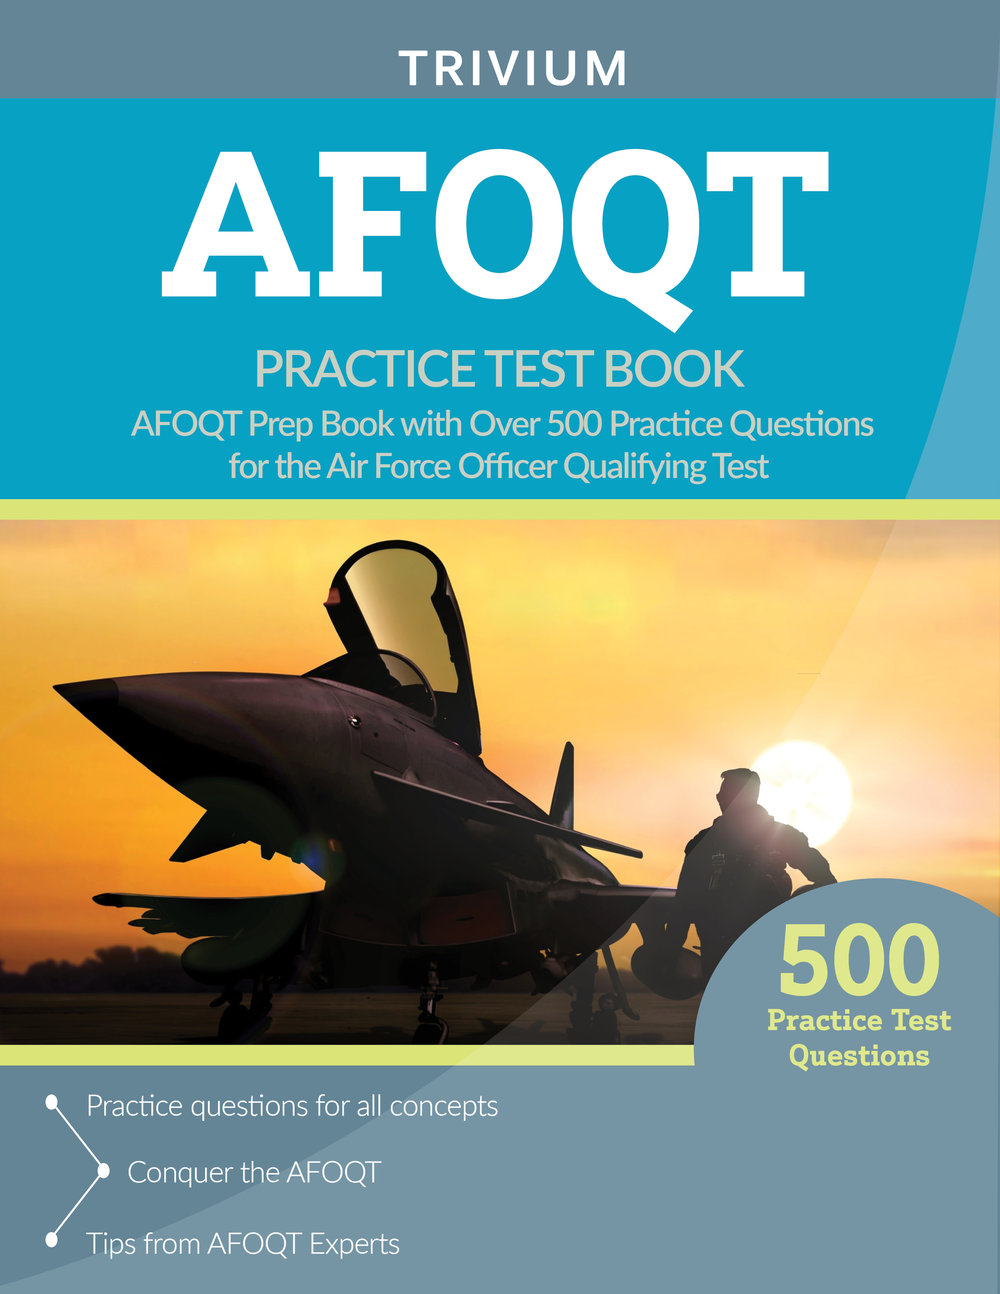 AFOQT Pracrice Test Book